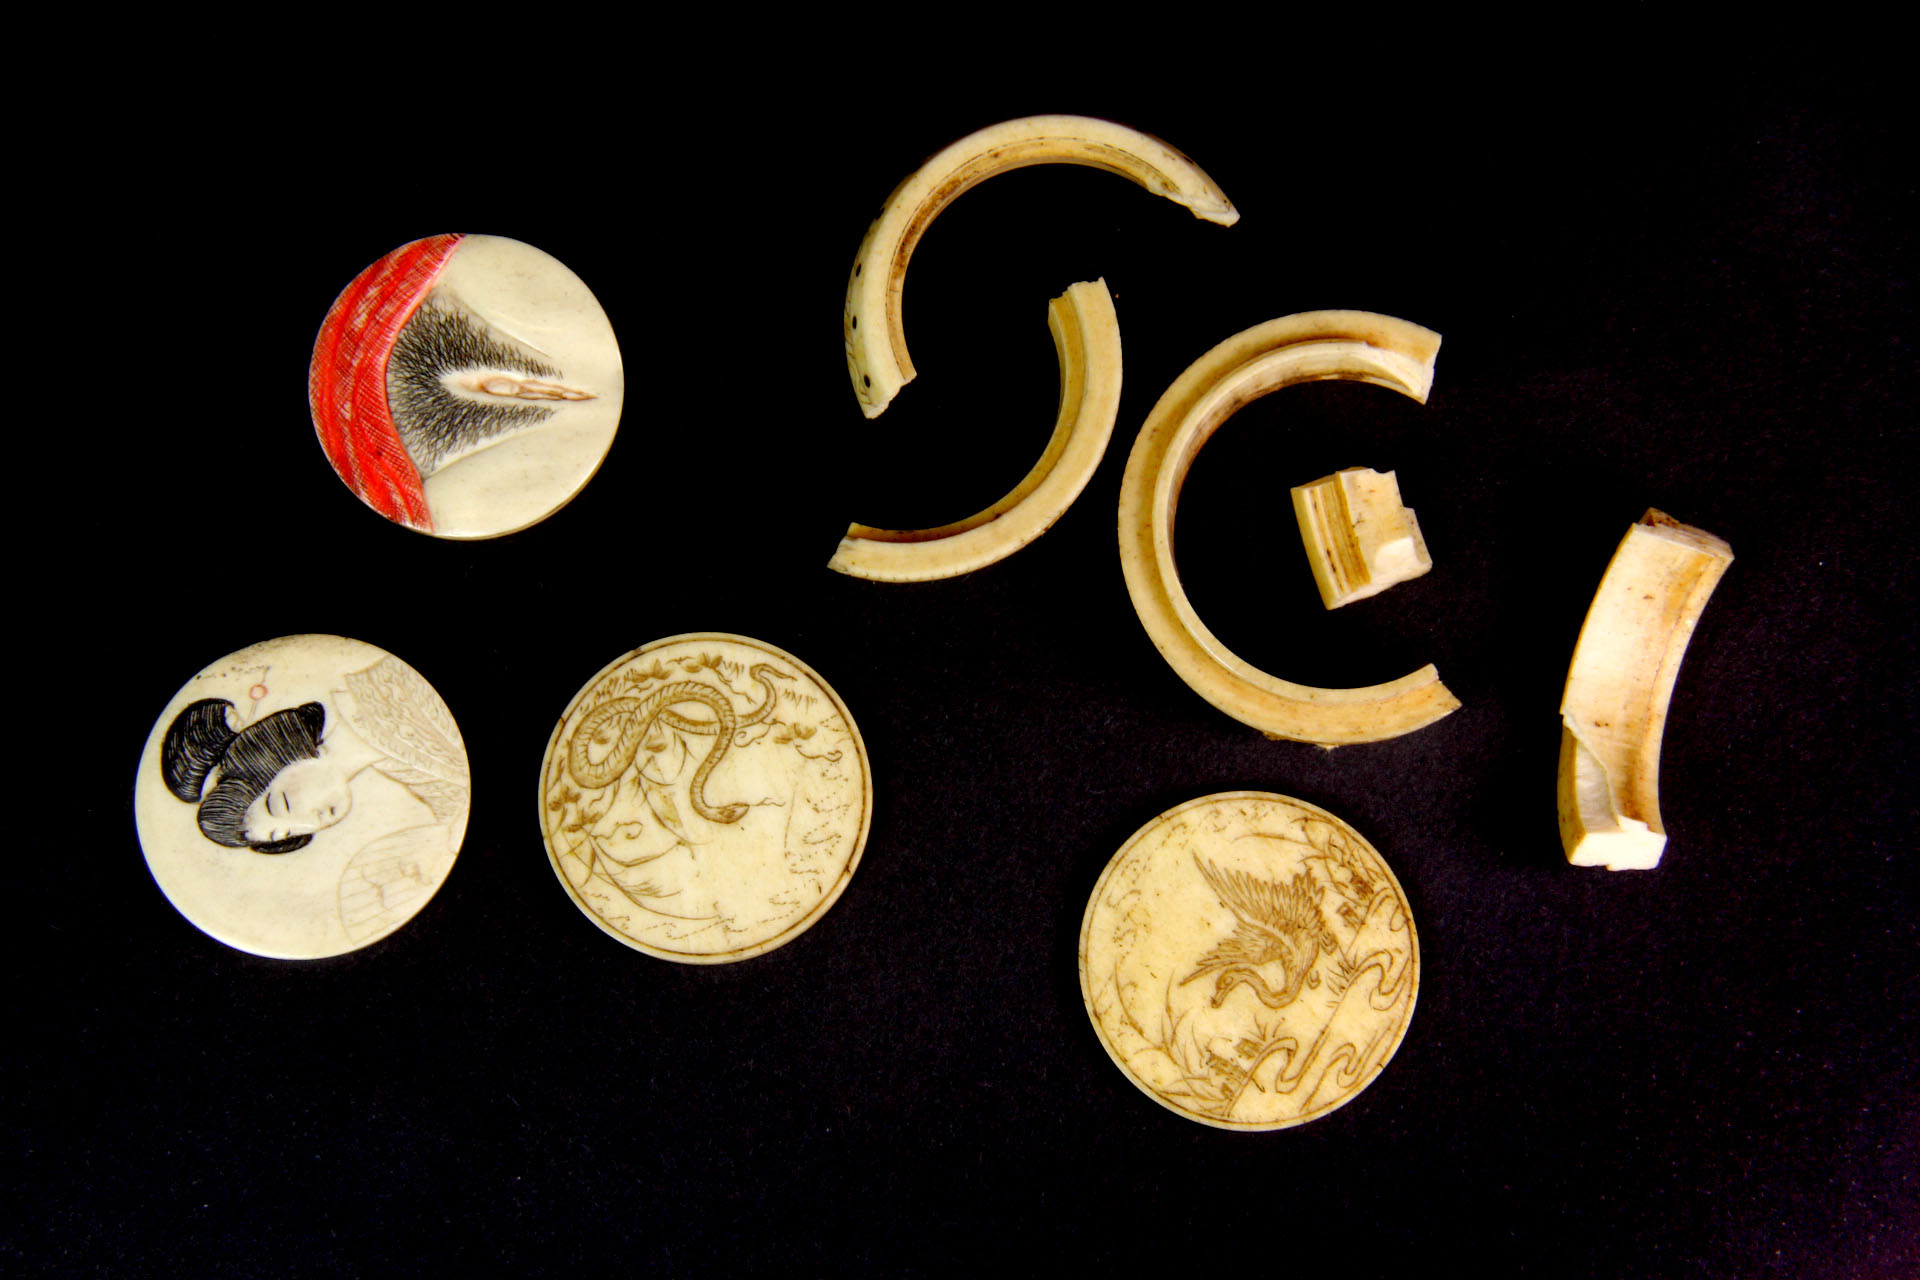 Two Interesting 19th Century Japanese Carved Bone Ivory Erotic Discs Together With Two Engraved B